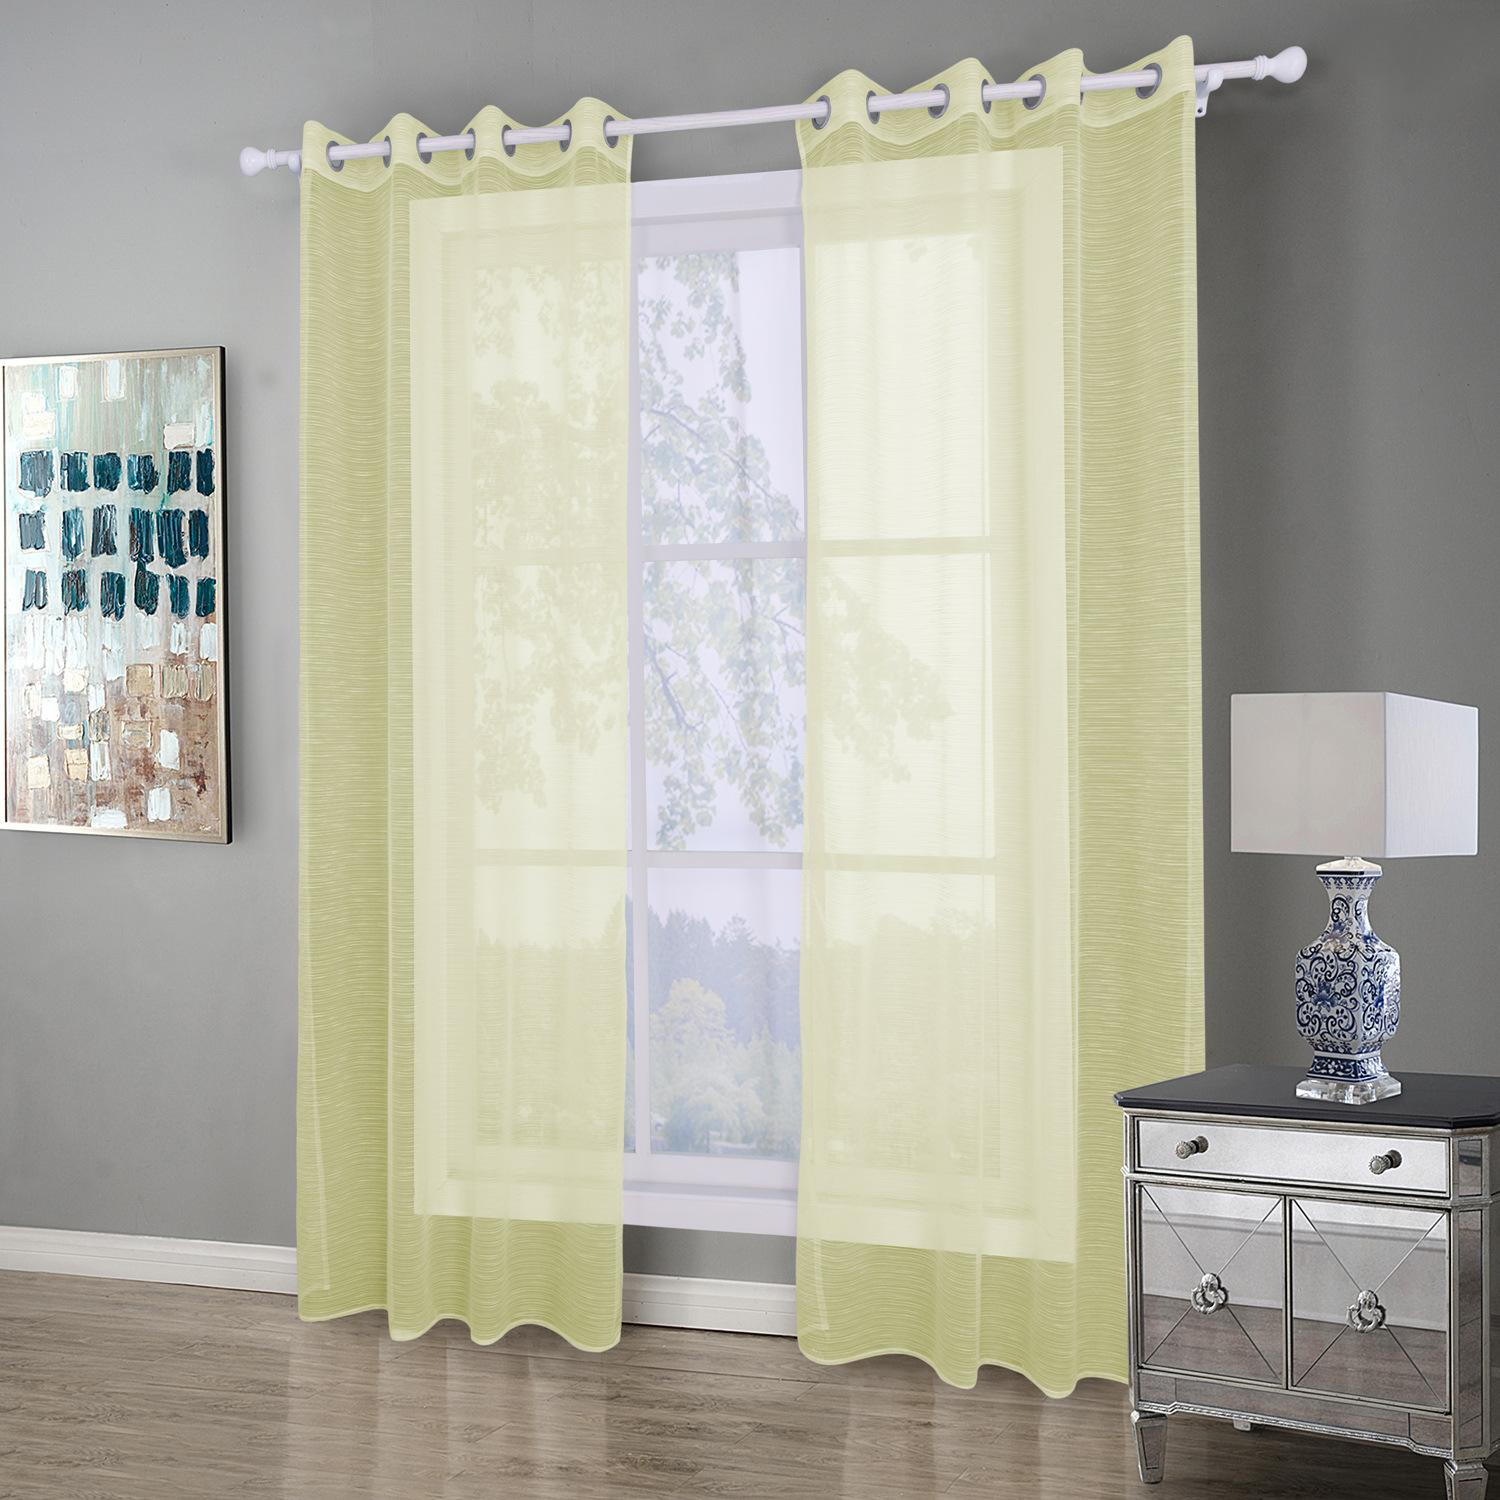 8005 Modern Sheer Curtains For Living Room Bedroom Curtains For Window Treatment Drapes Finished Blackout Sheer Curtains 1 Panel for 11 Smart Initiatives of How to Make Modern Window Treatments For Bedroom